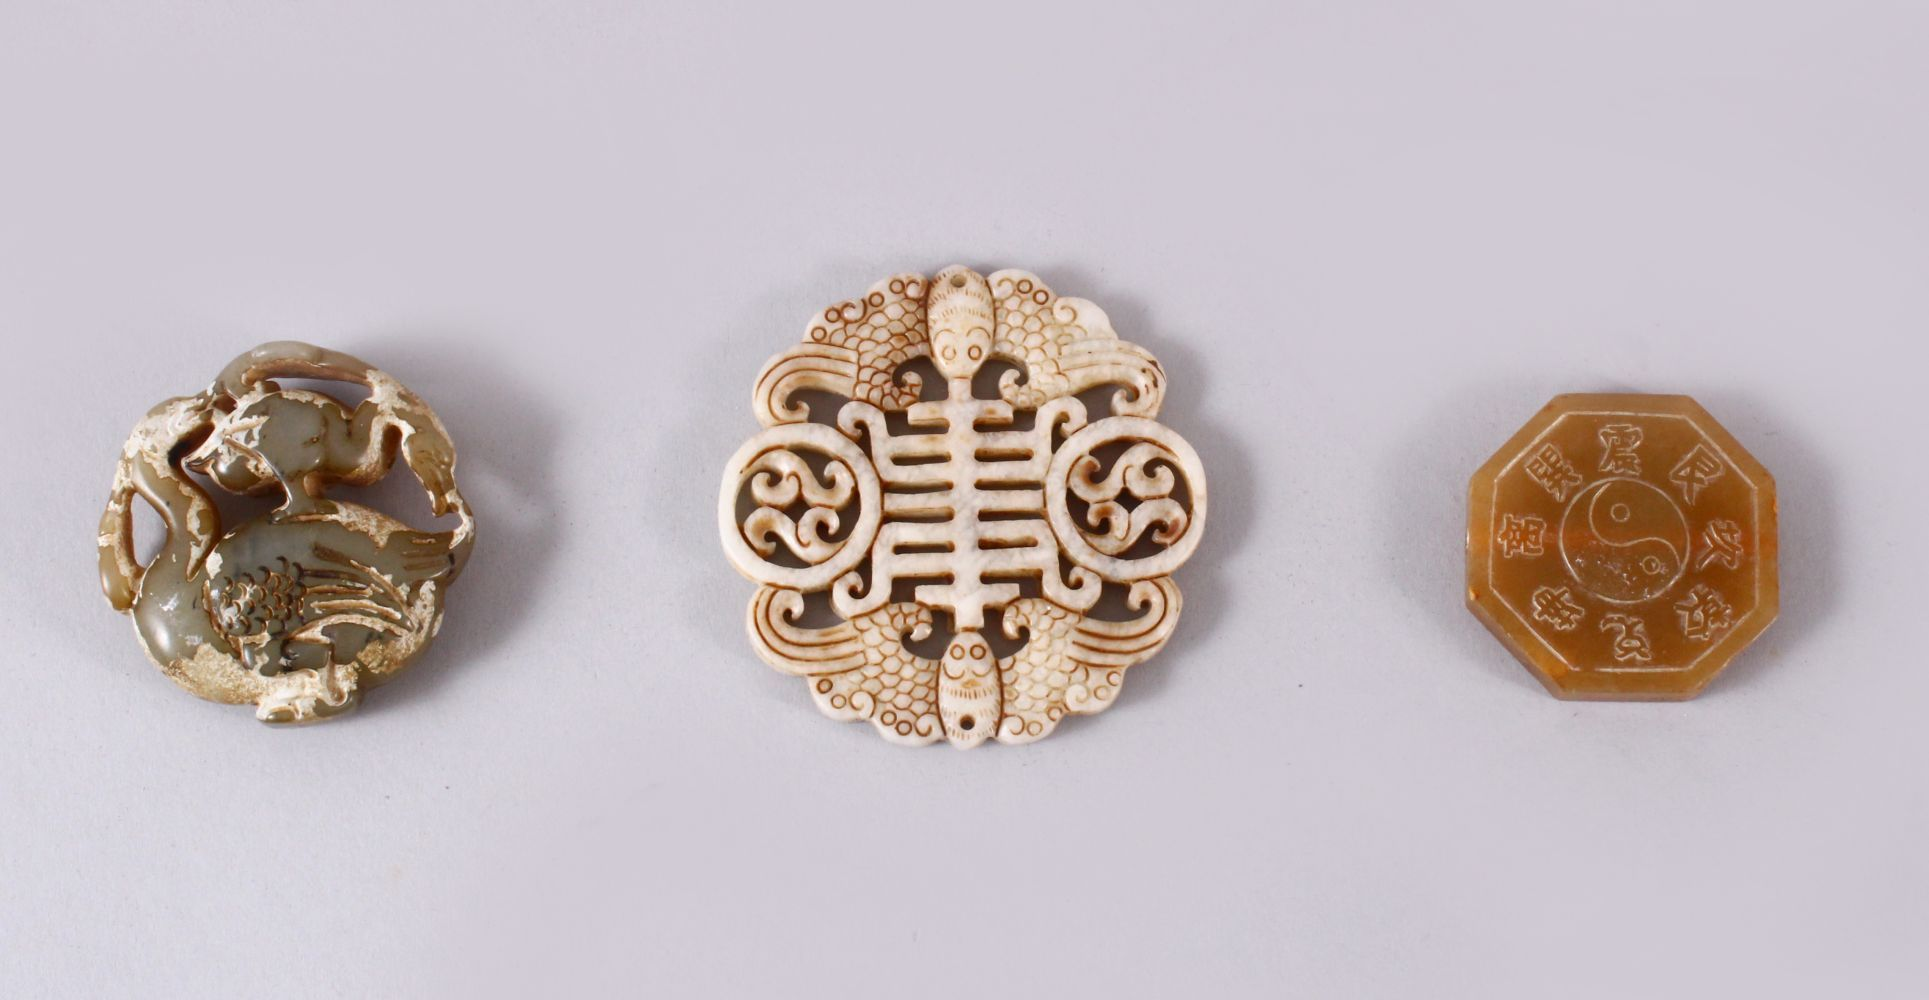 THREE CHINESE CARVED JADE PENDANTS, One carved in the form of TWIN BATS AND SYMBOLS, 6.5cm, one